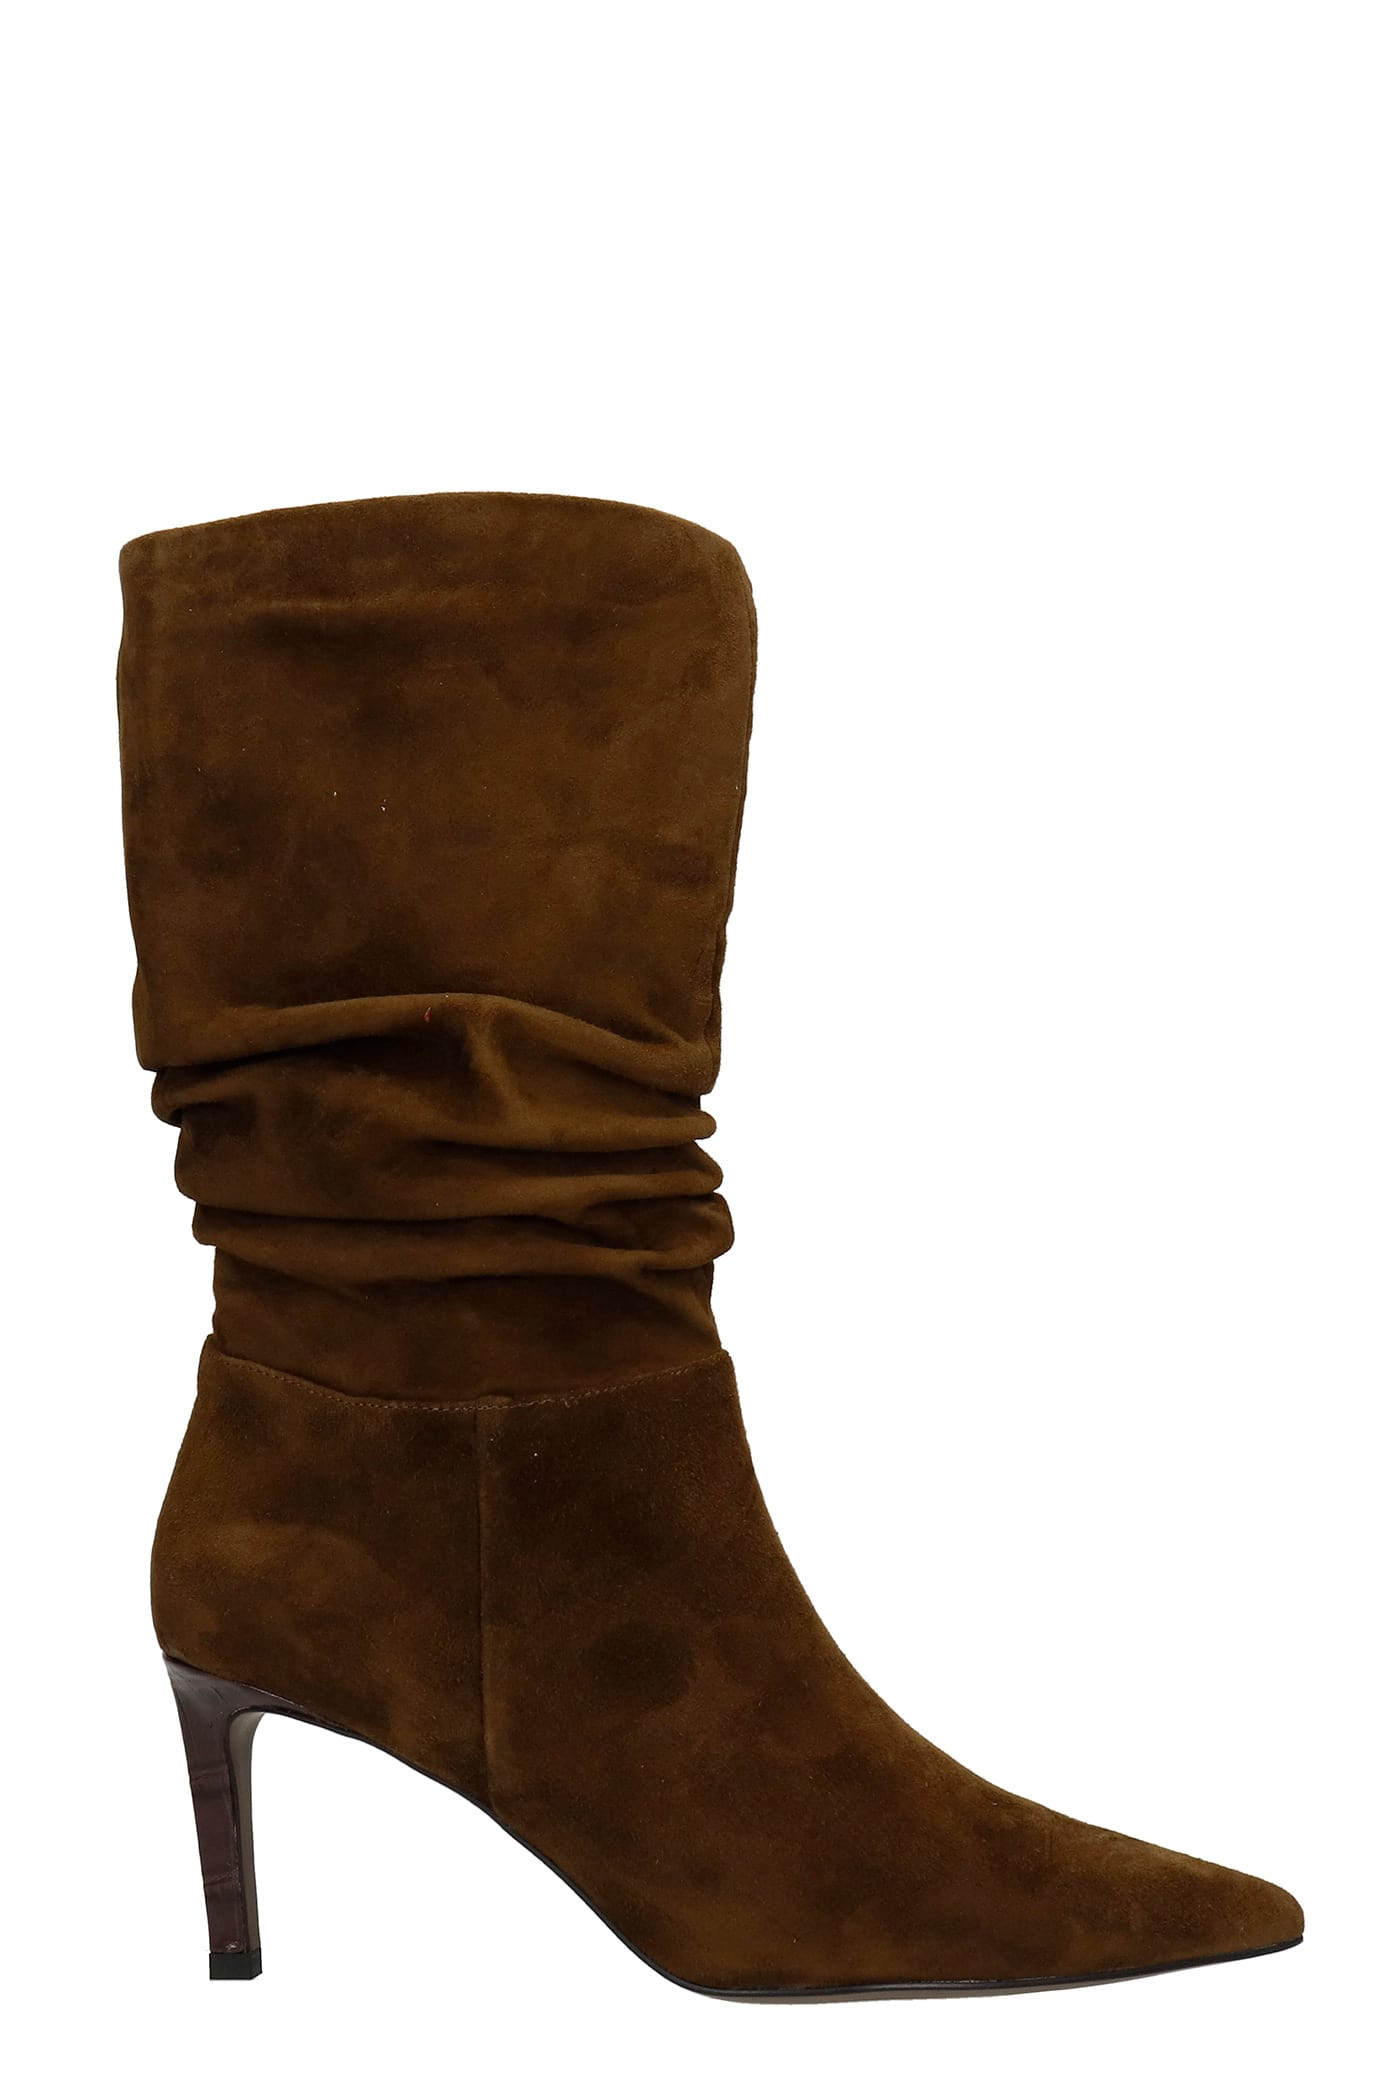 High Heels Ankle Boots In Brown Suede